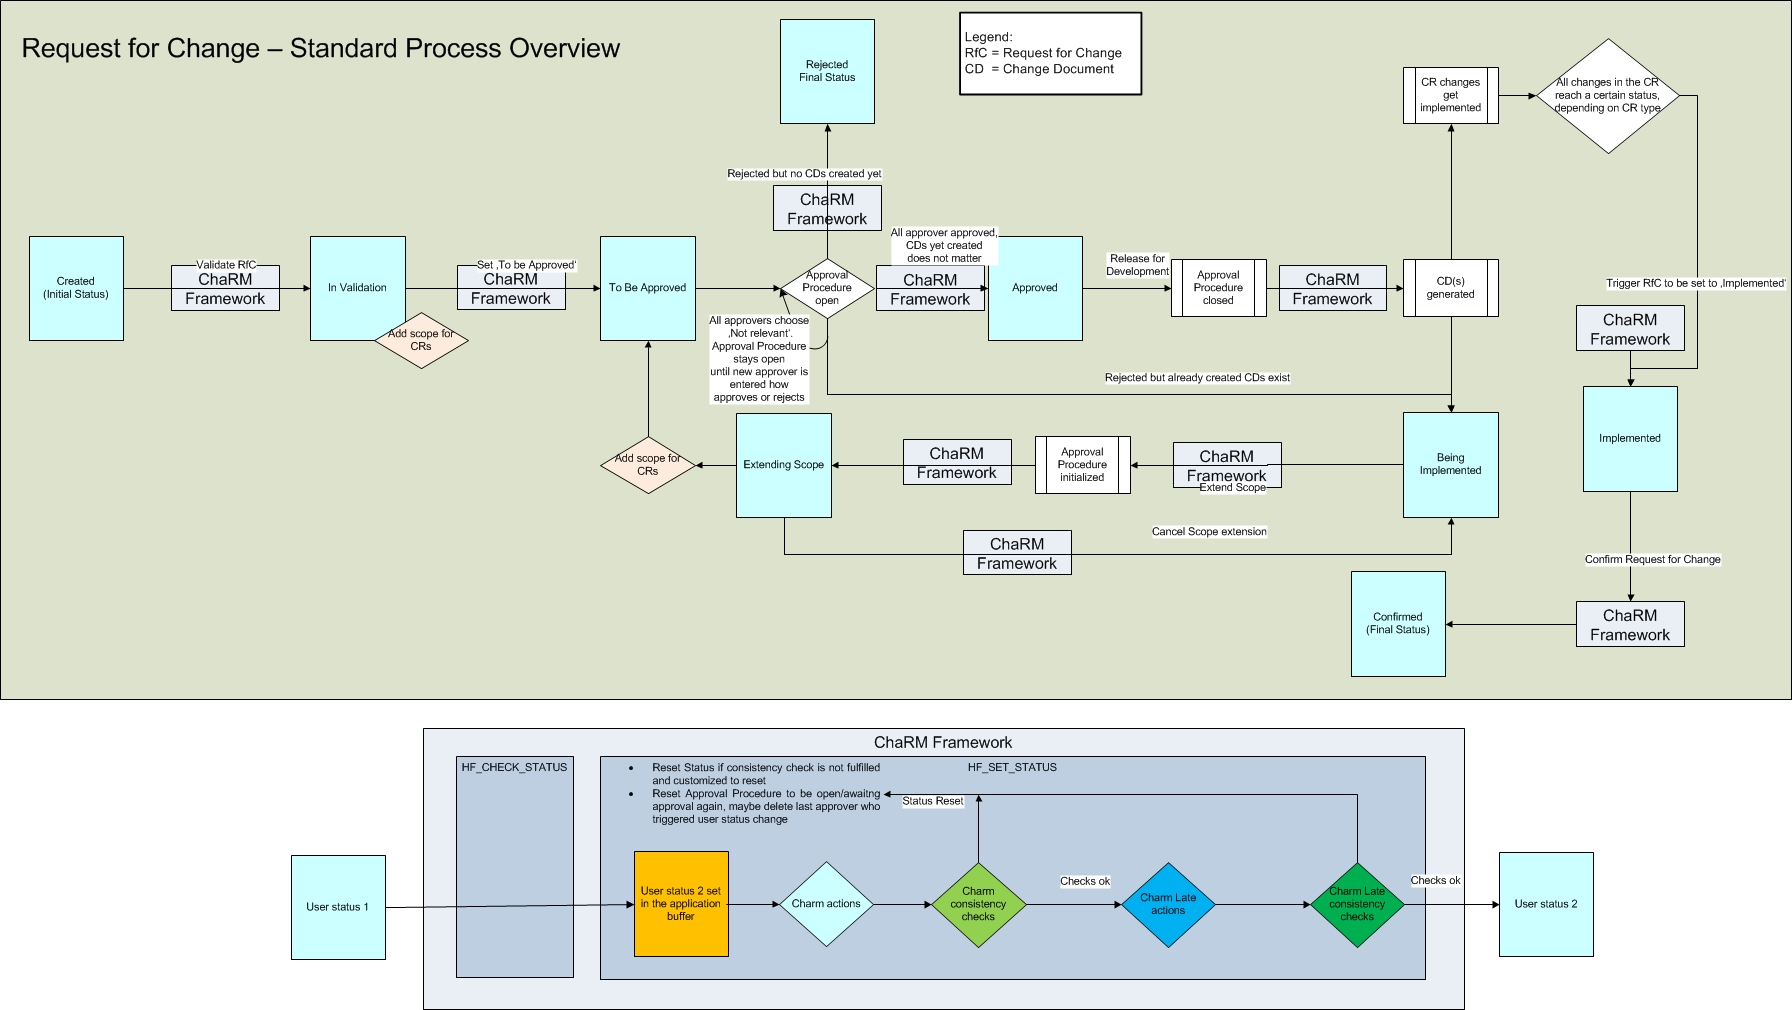 Approval Procedure overview with user status and ChaRM Framework.jpg